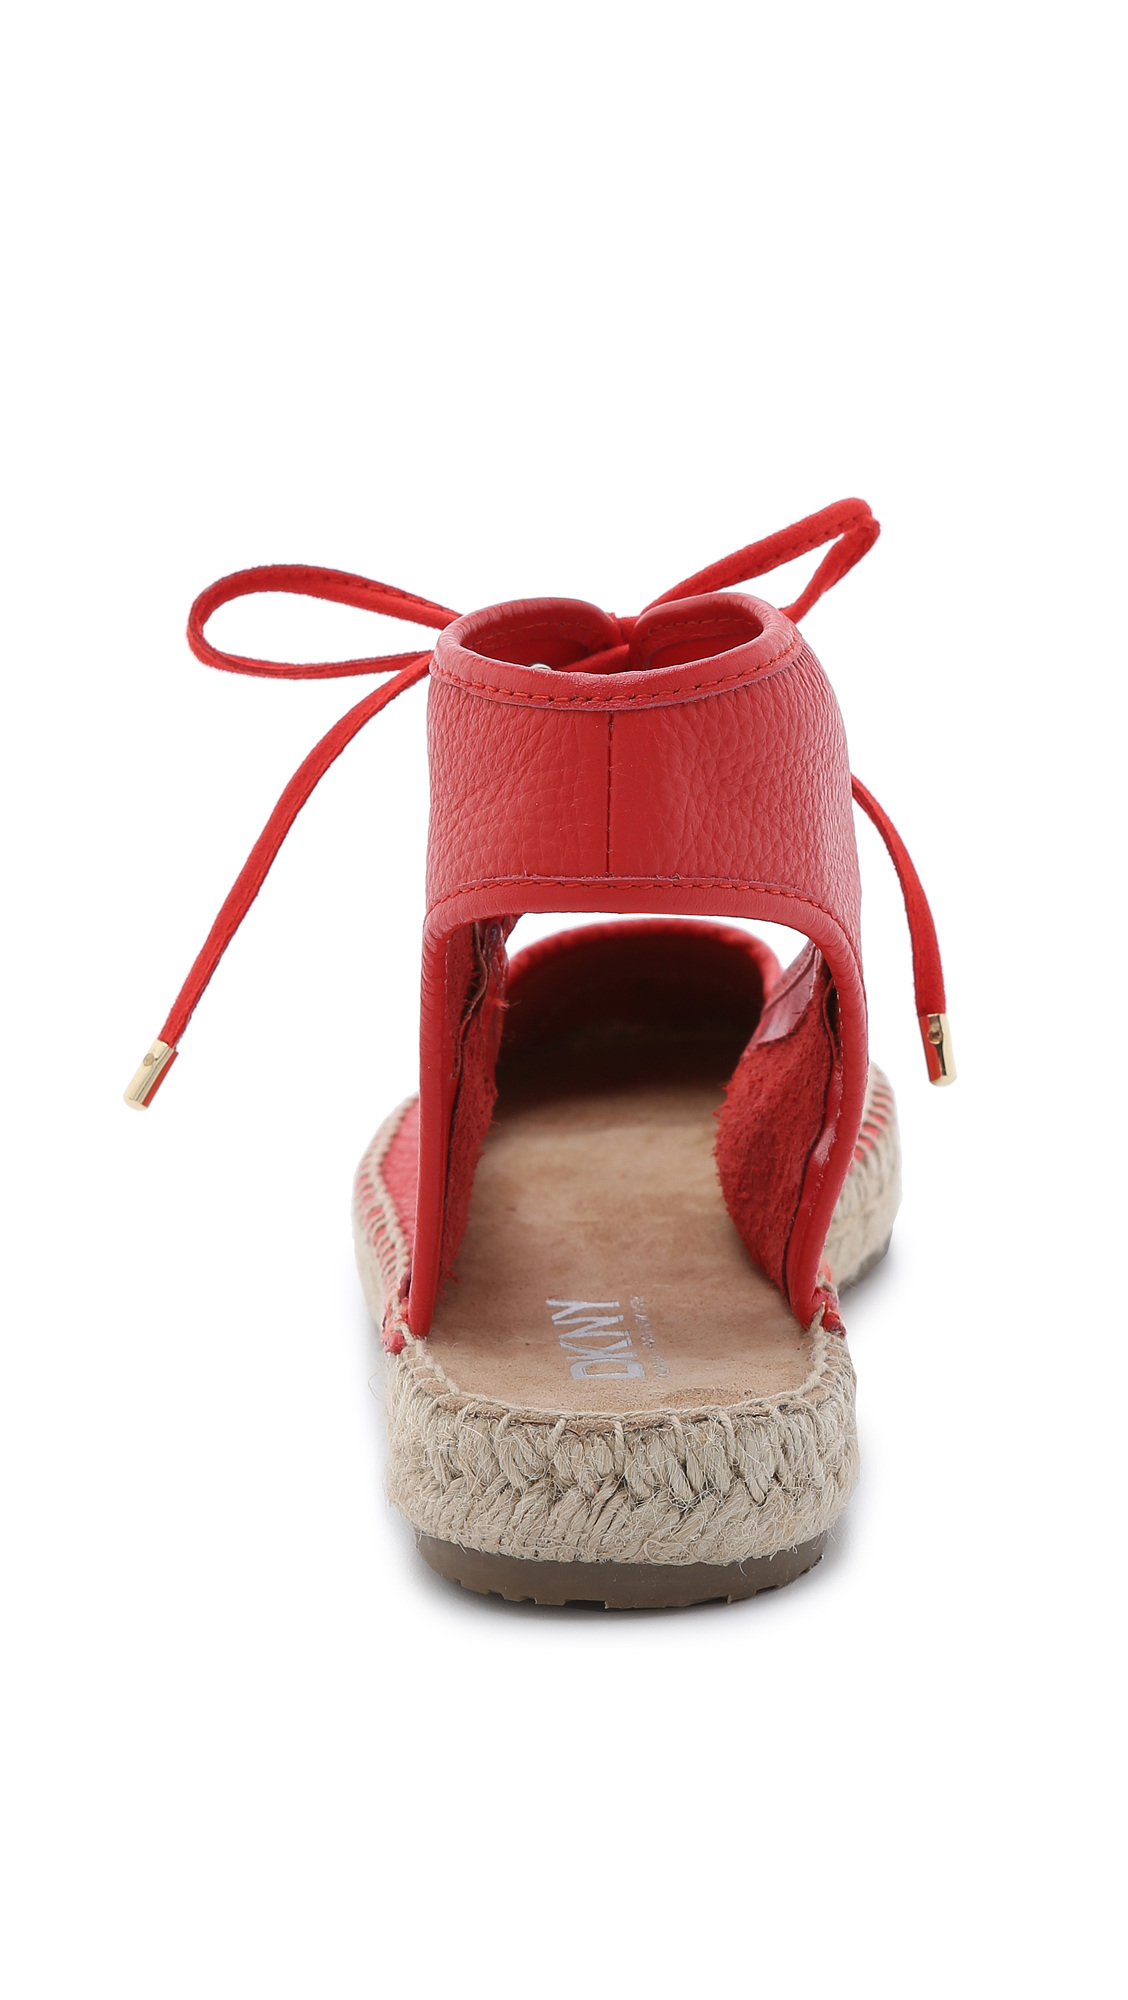 DKNY Isa Lace Up Espadrilles - Bright